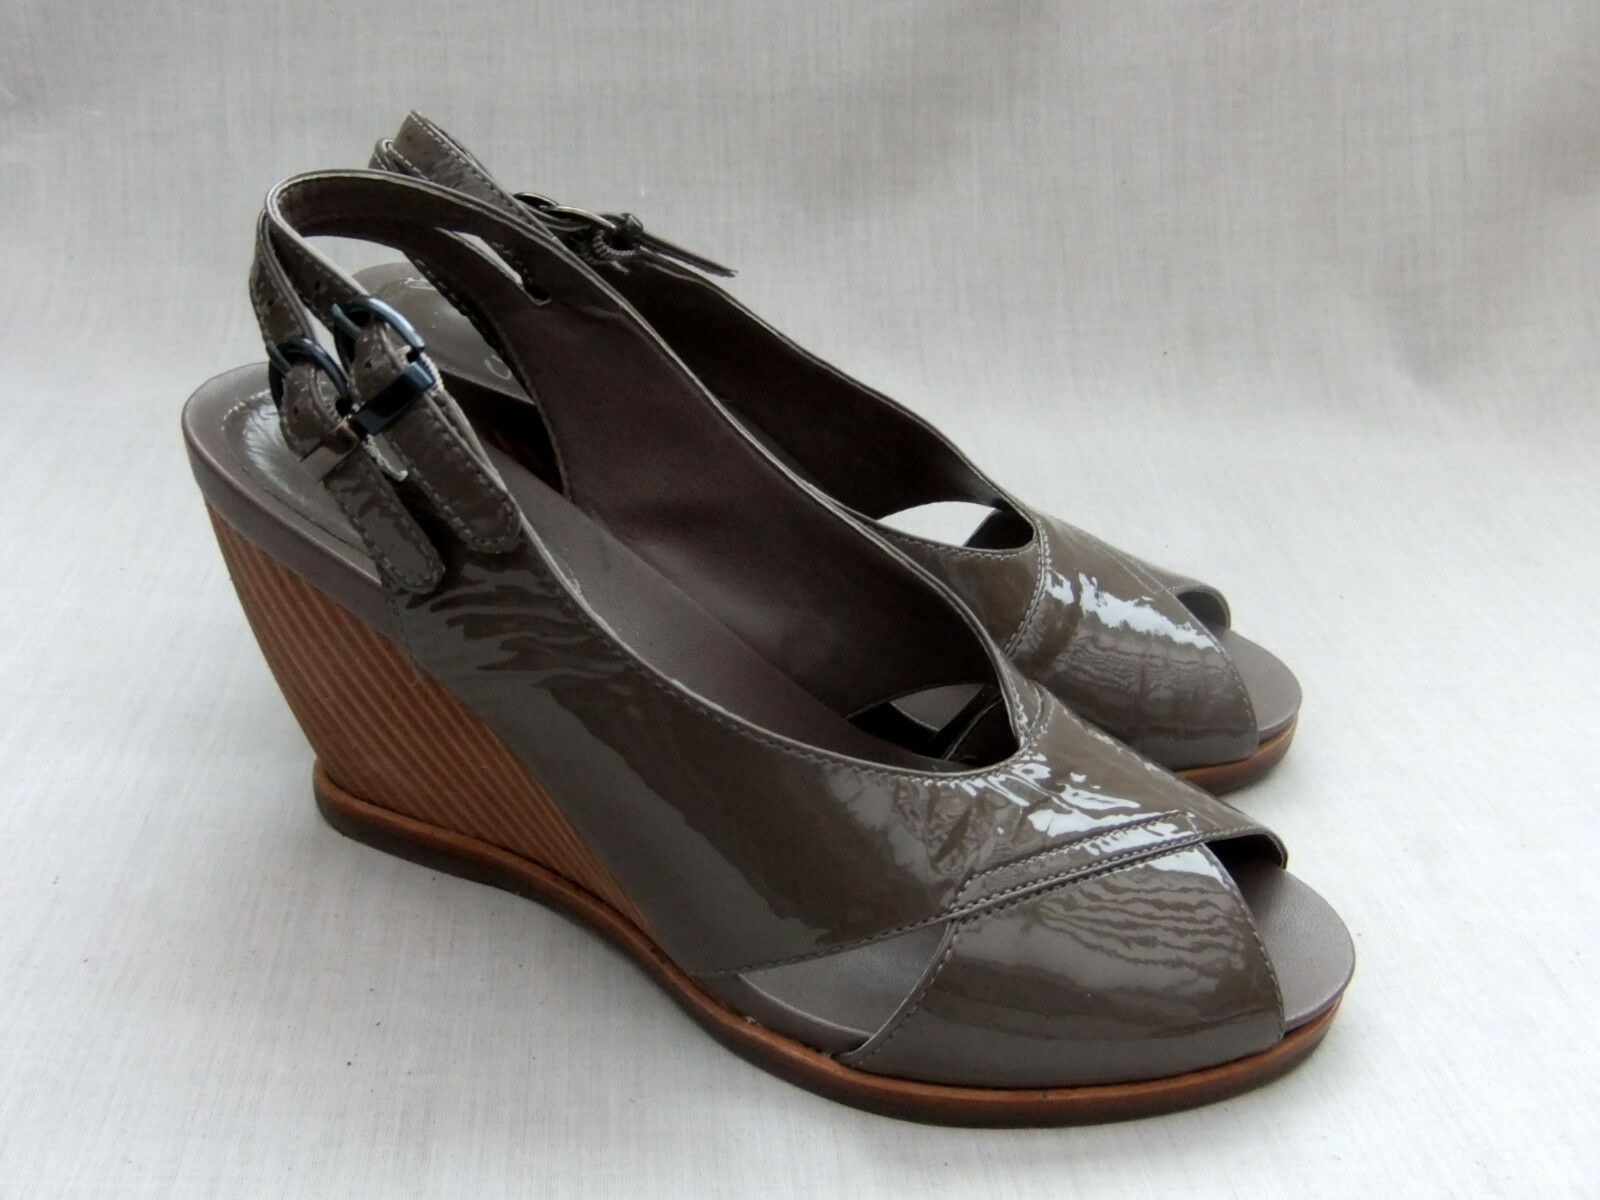 NEW CLARKS BALLOT BOX WOMENS BROWN PATENT LEATHER WEDGE SANDALS